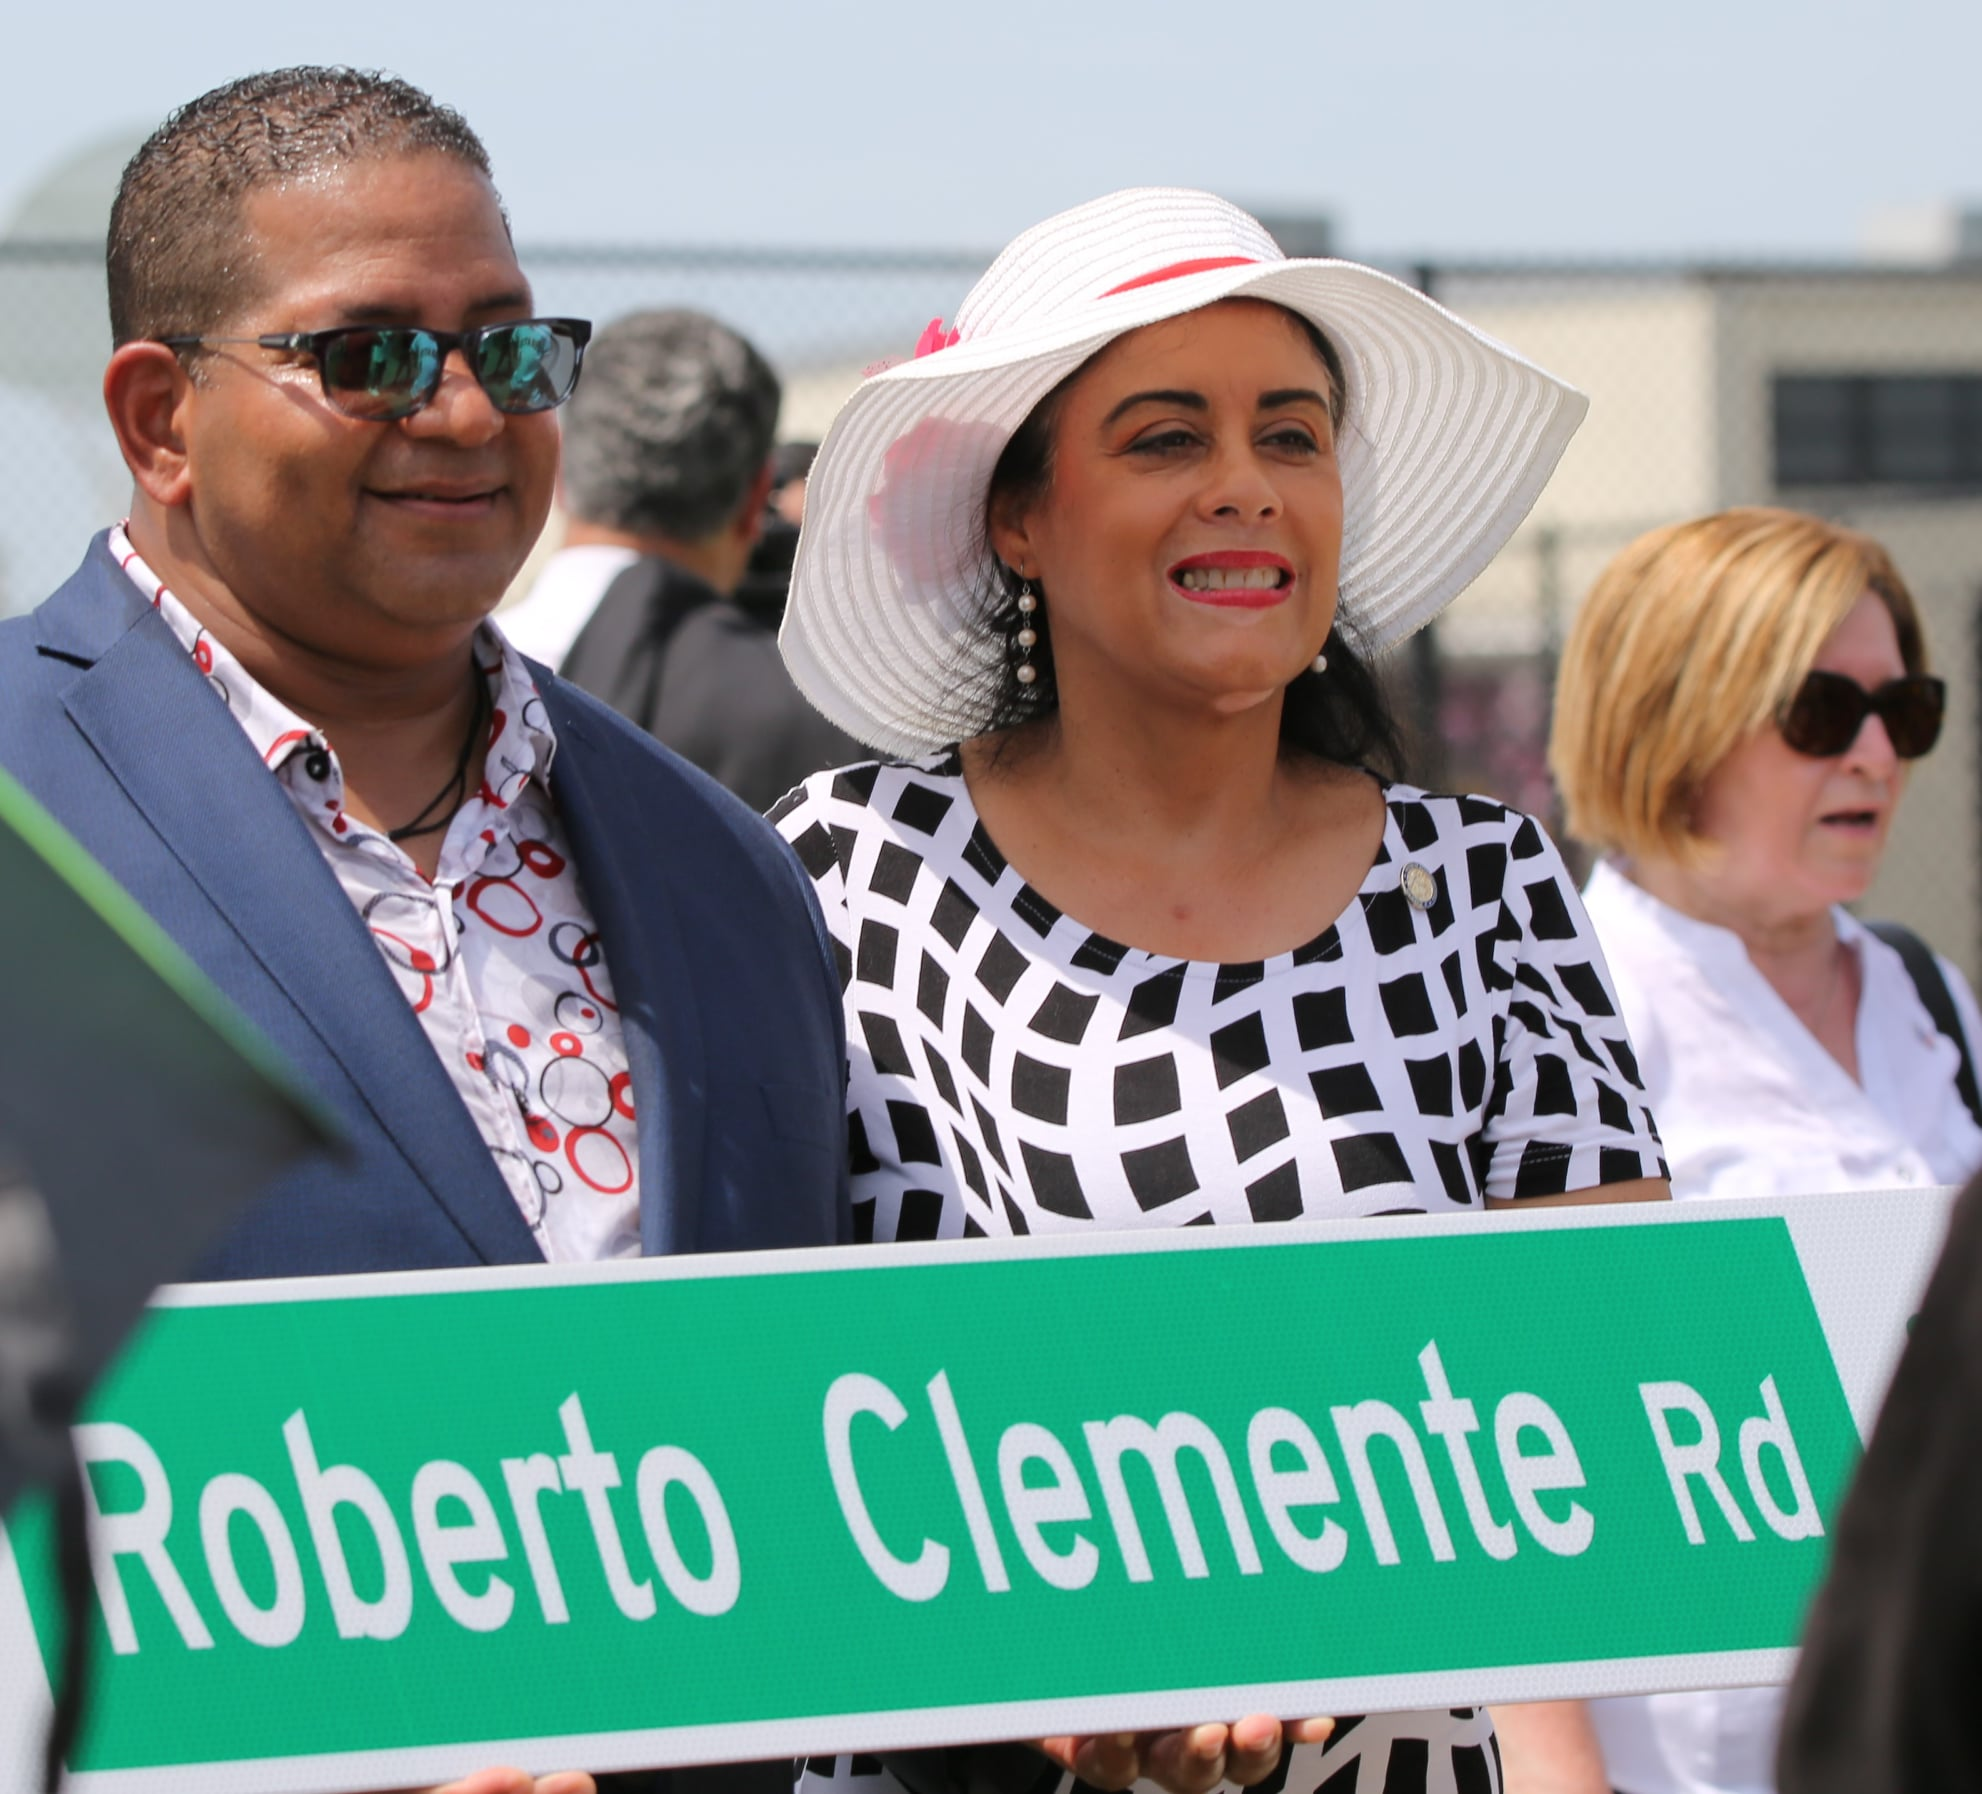 State Rep. Daisy Morales celebrates wirh Luis Clemente, son of Roberto Clemente, during the street sign unveiling Wednesday, June 23, 2021. Photo courtesy of State Rep. Morales.